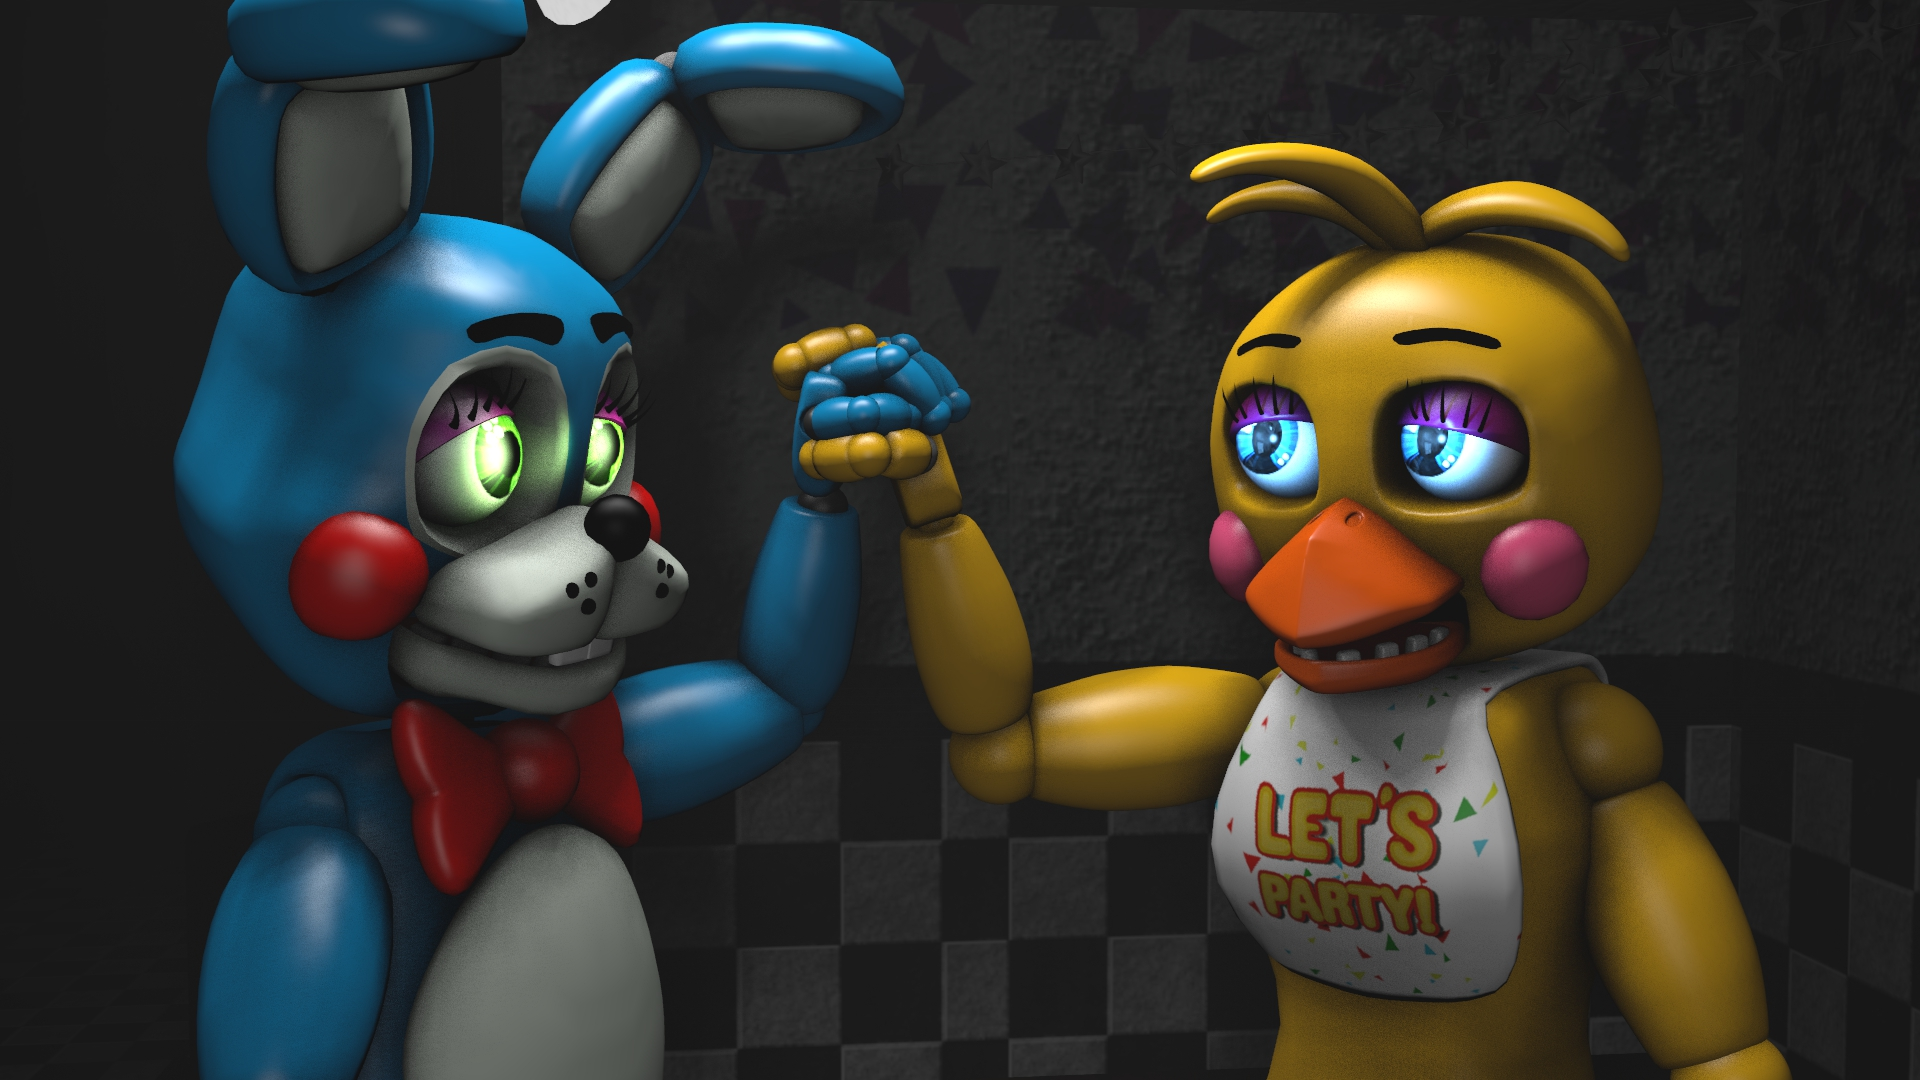 art toy chica wallpaper - photo #49